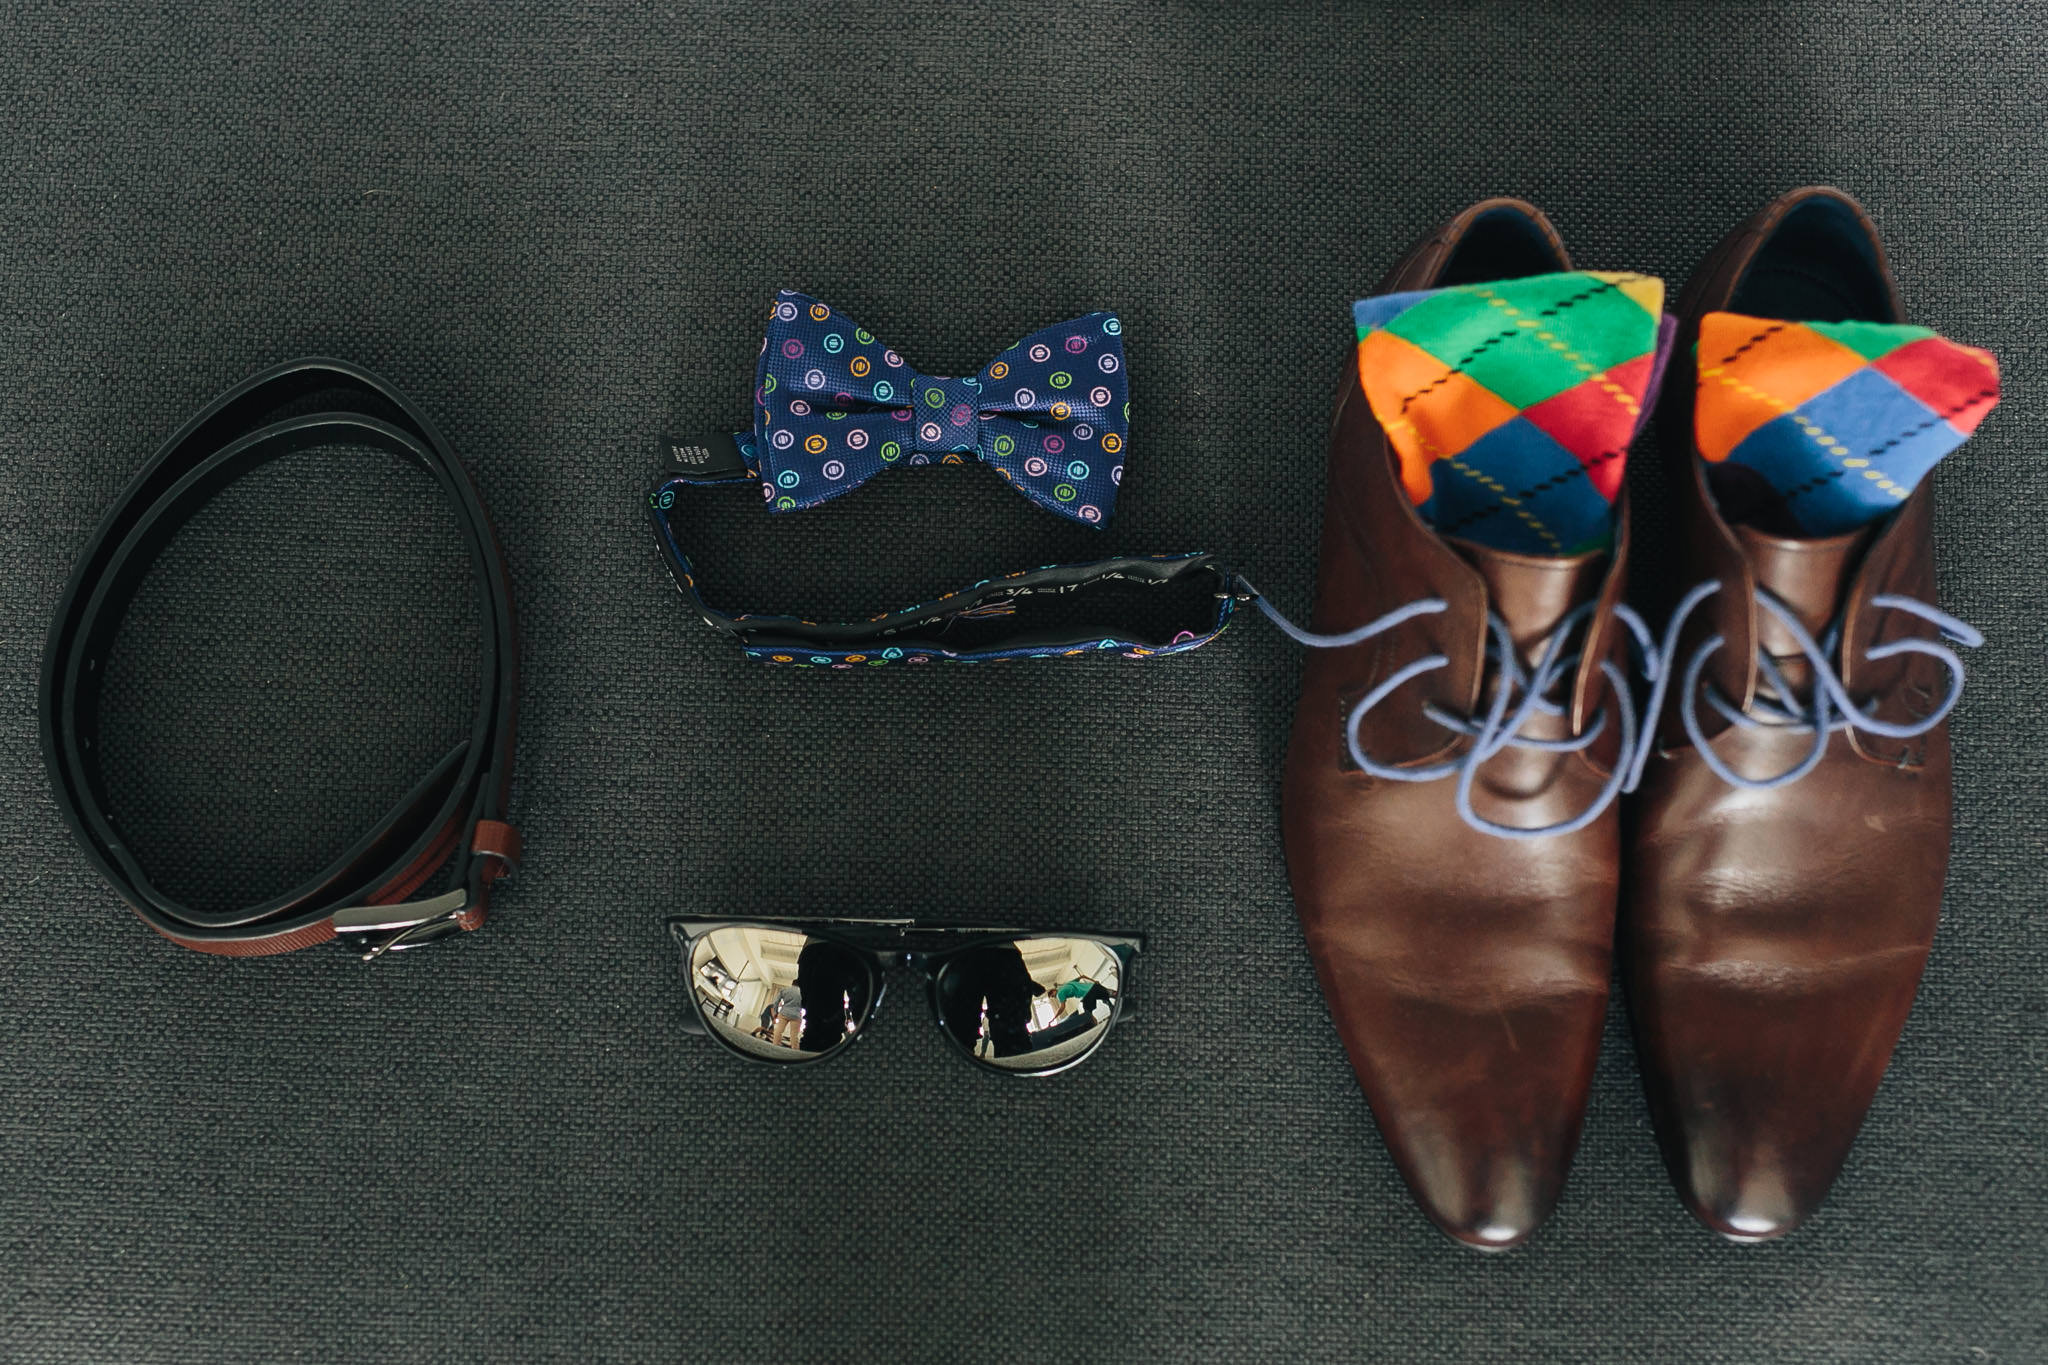 Grooms bow tie, shoes and accessories displayed for a wedding photo